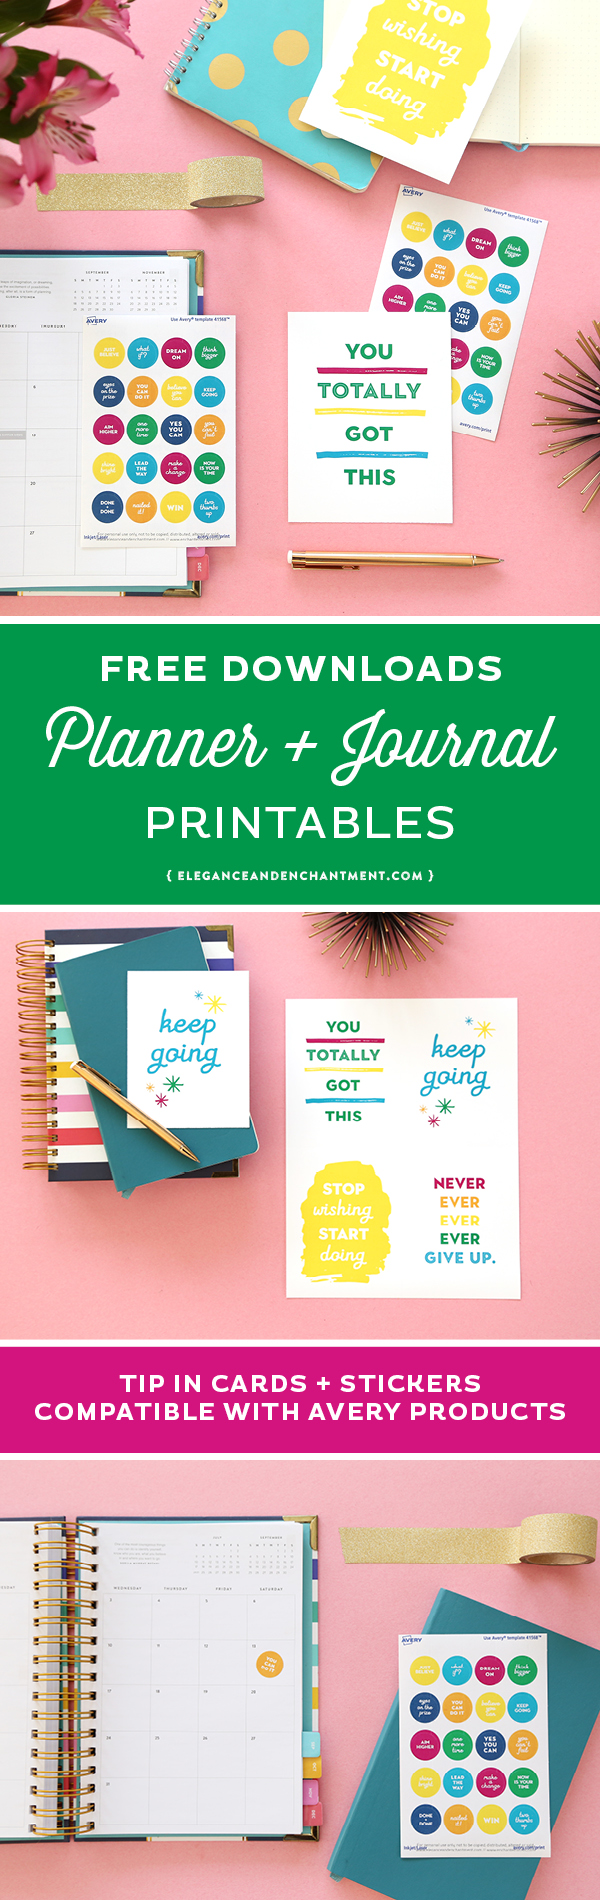 Planner and Journaling Printables for everyone who loves to plan in the prettiest way. Download all of these colorful goodies for free! Includes printable tip in cards with encouraging quotes and printable planner stickers. Compatible with Avery Products 8387 and 41568 for easy printing! Designs from Elegance and Enchantment in partnership with Avery.